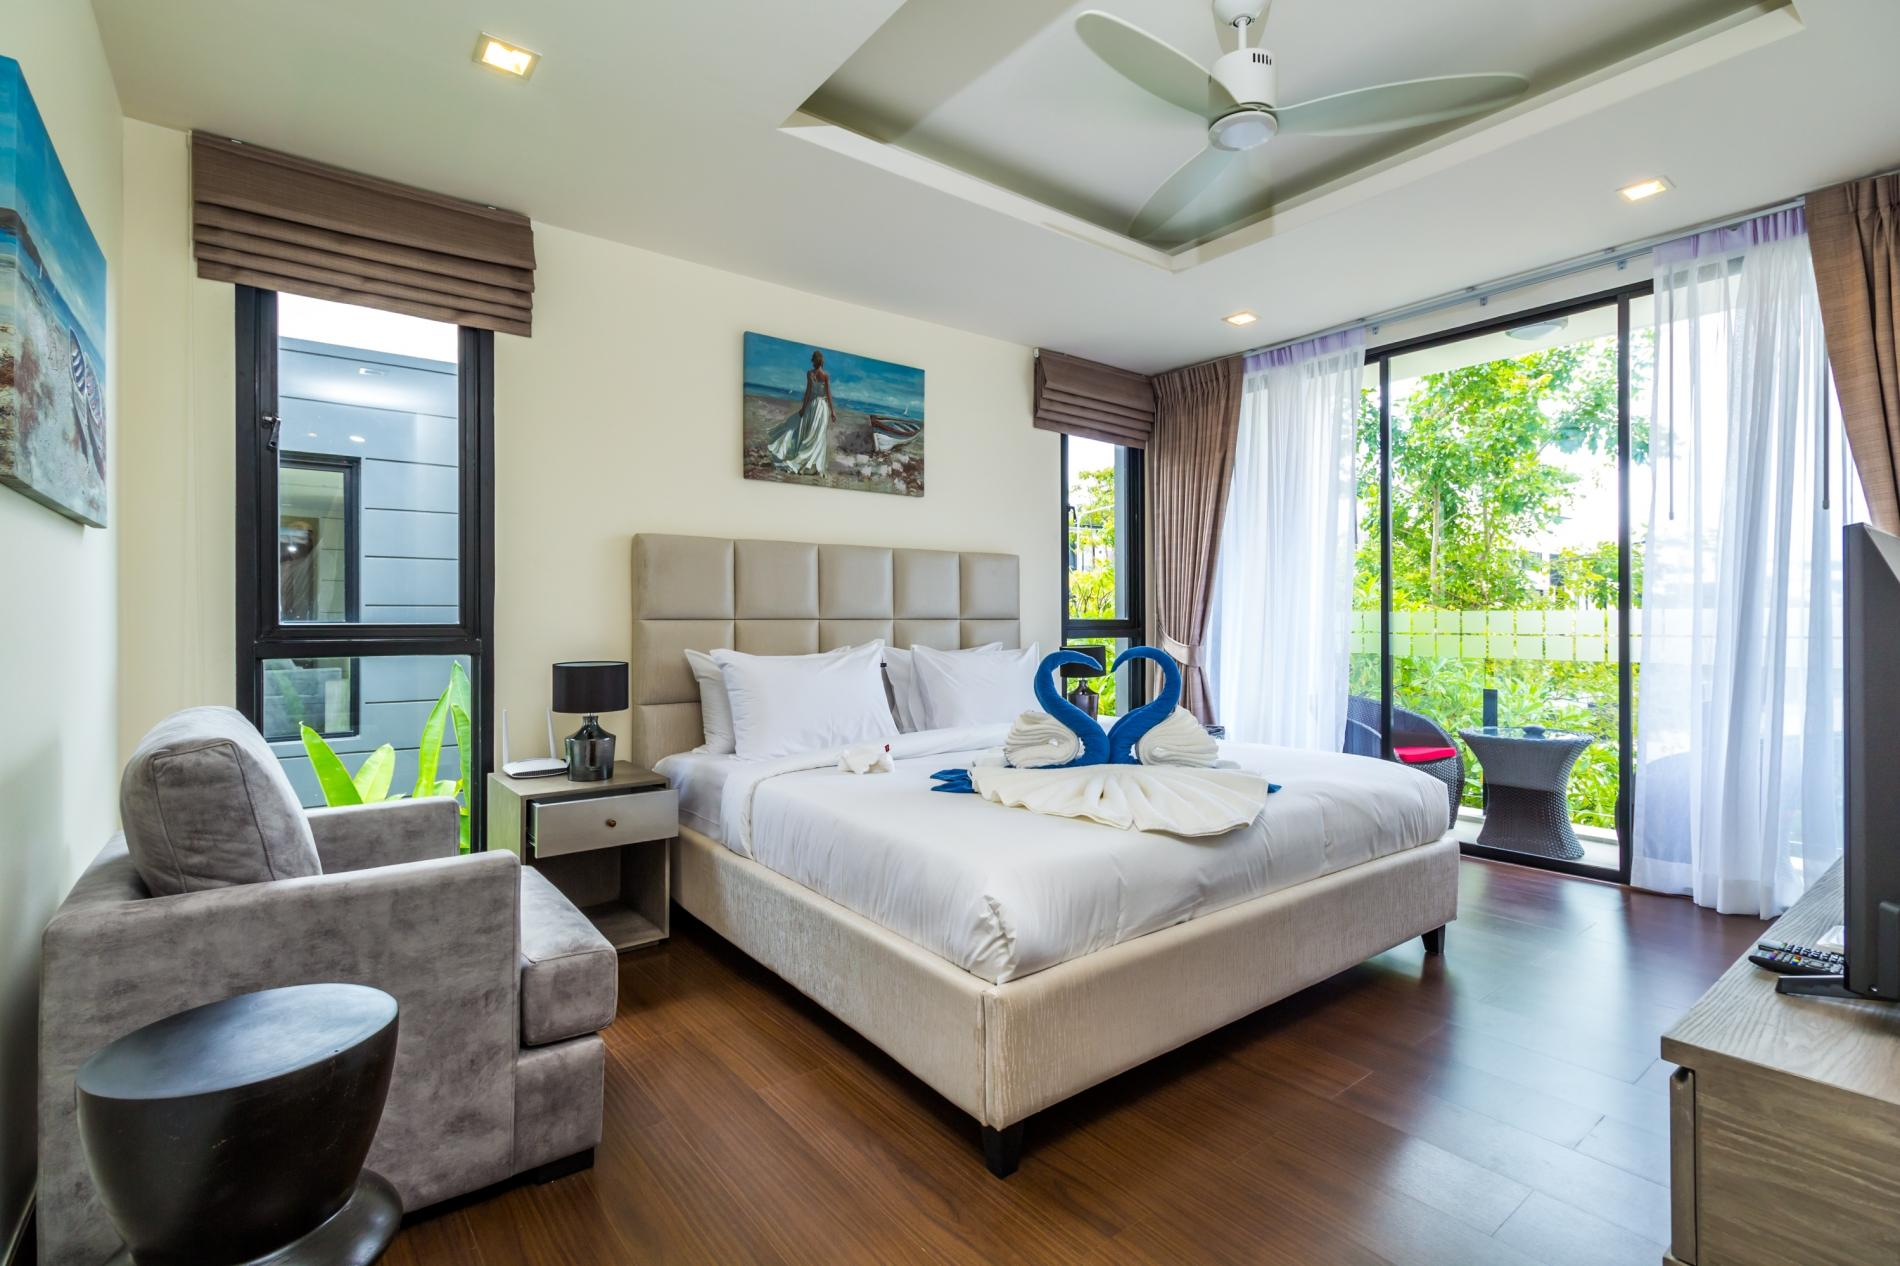 LP101 - Private rooftop pool villa in Laguna for 9 people, near restaurants and shops photo 5776960